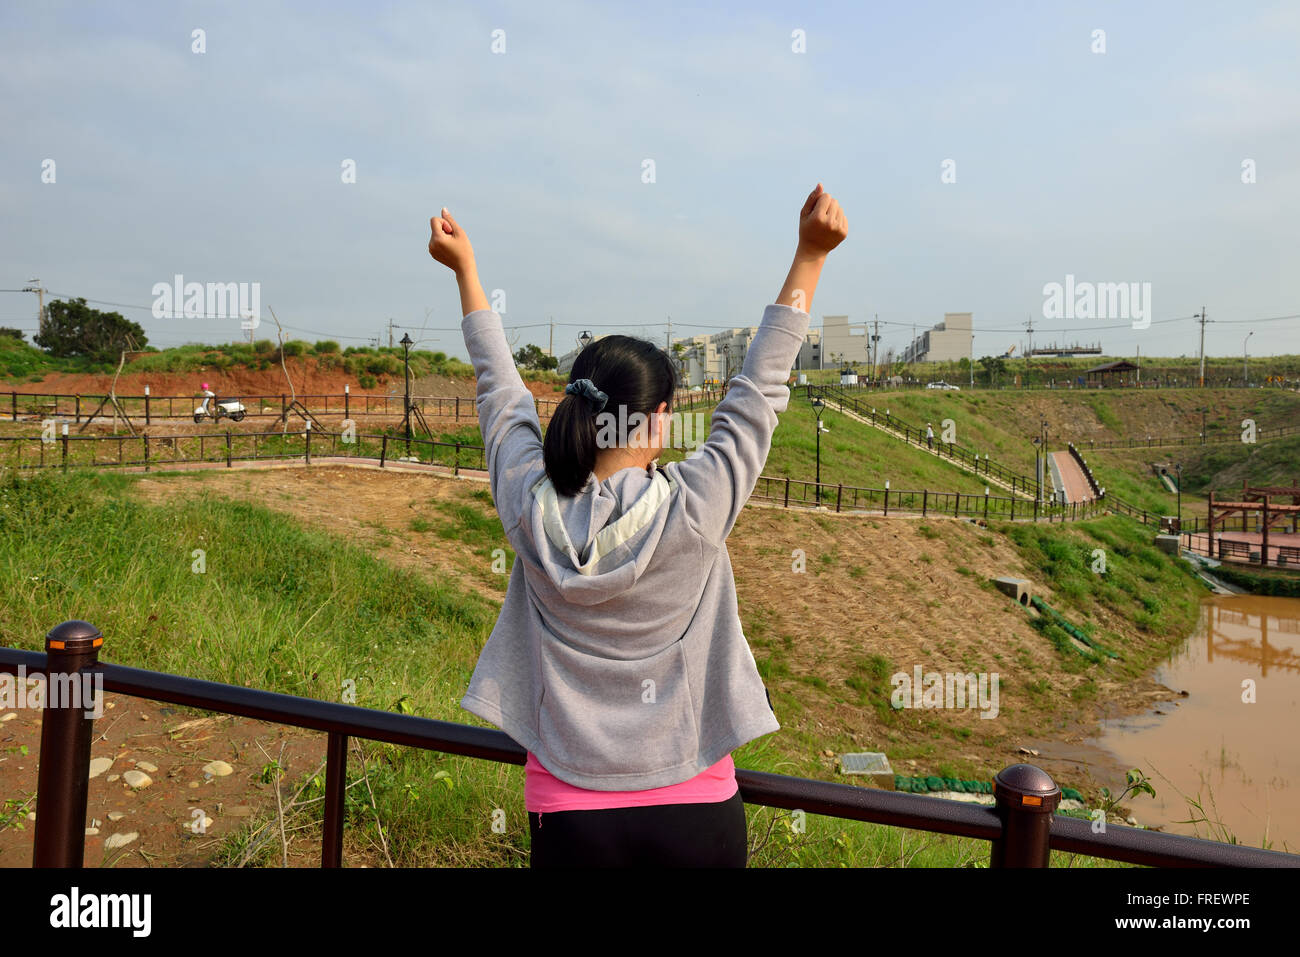 woman standing with hands up /Future / freedom / hope / success concept - Stock Image